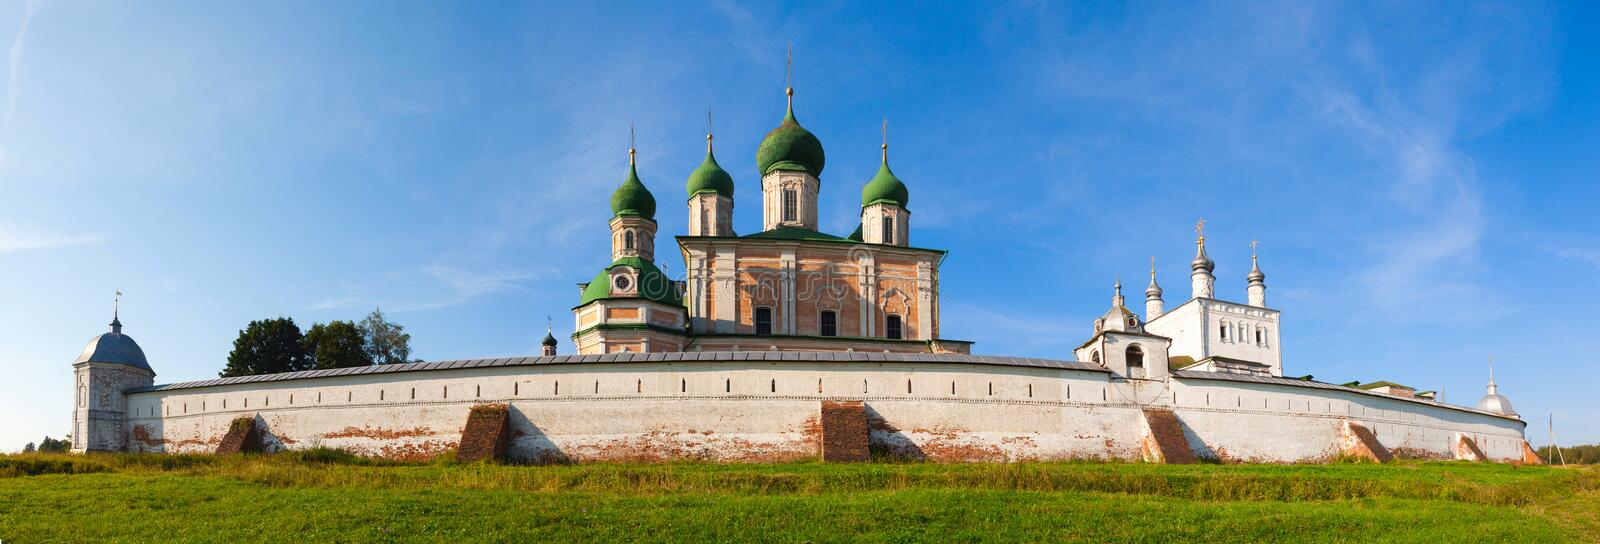 Download Goritsky monastery stock photo. Image of church, russian - 26544852